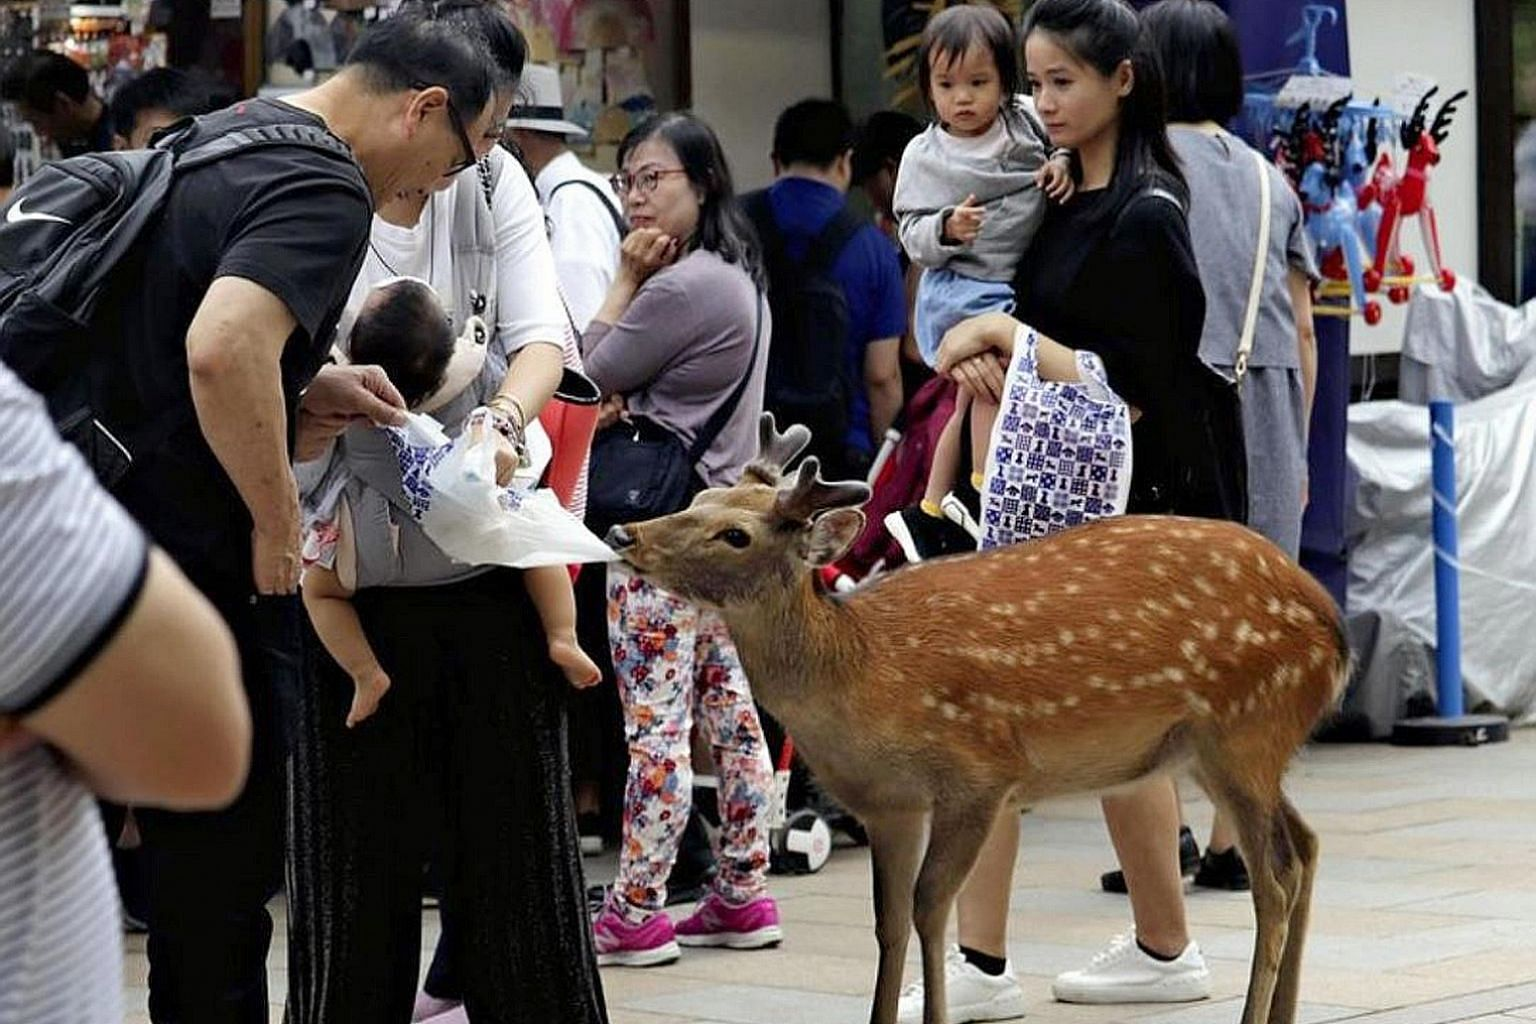 A deer trying to snatch a plastic bag from a tourist in Japan's Nara Park. Several foreign objects, including plastic bags, have been found in the stomachs of deer in the park, and the problem has been attributed to the worsening behaviour of tourist